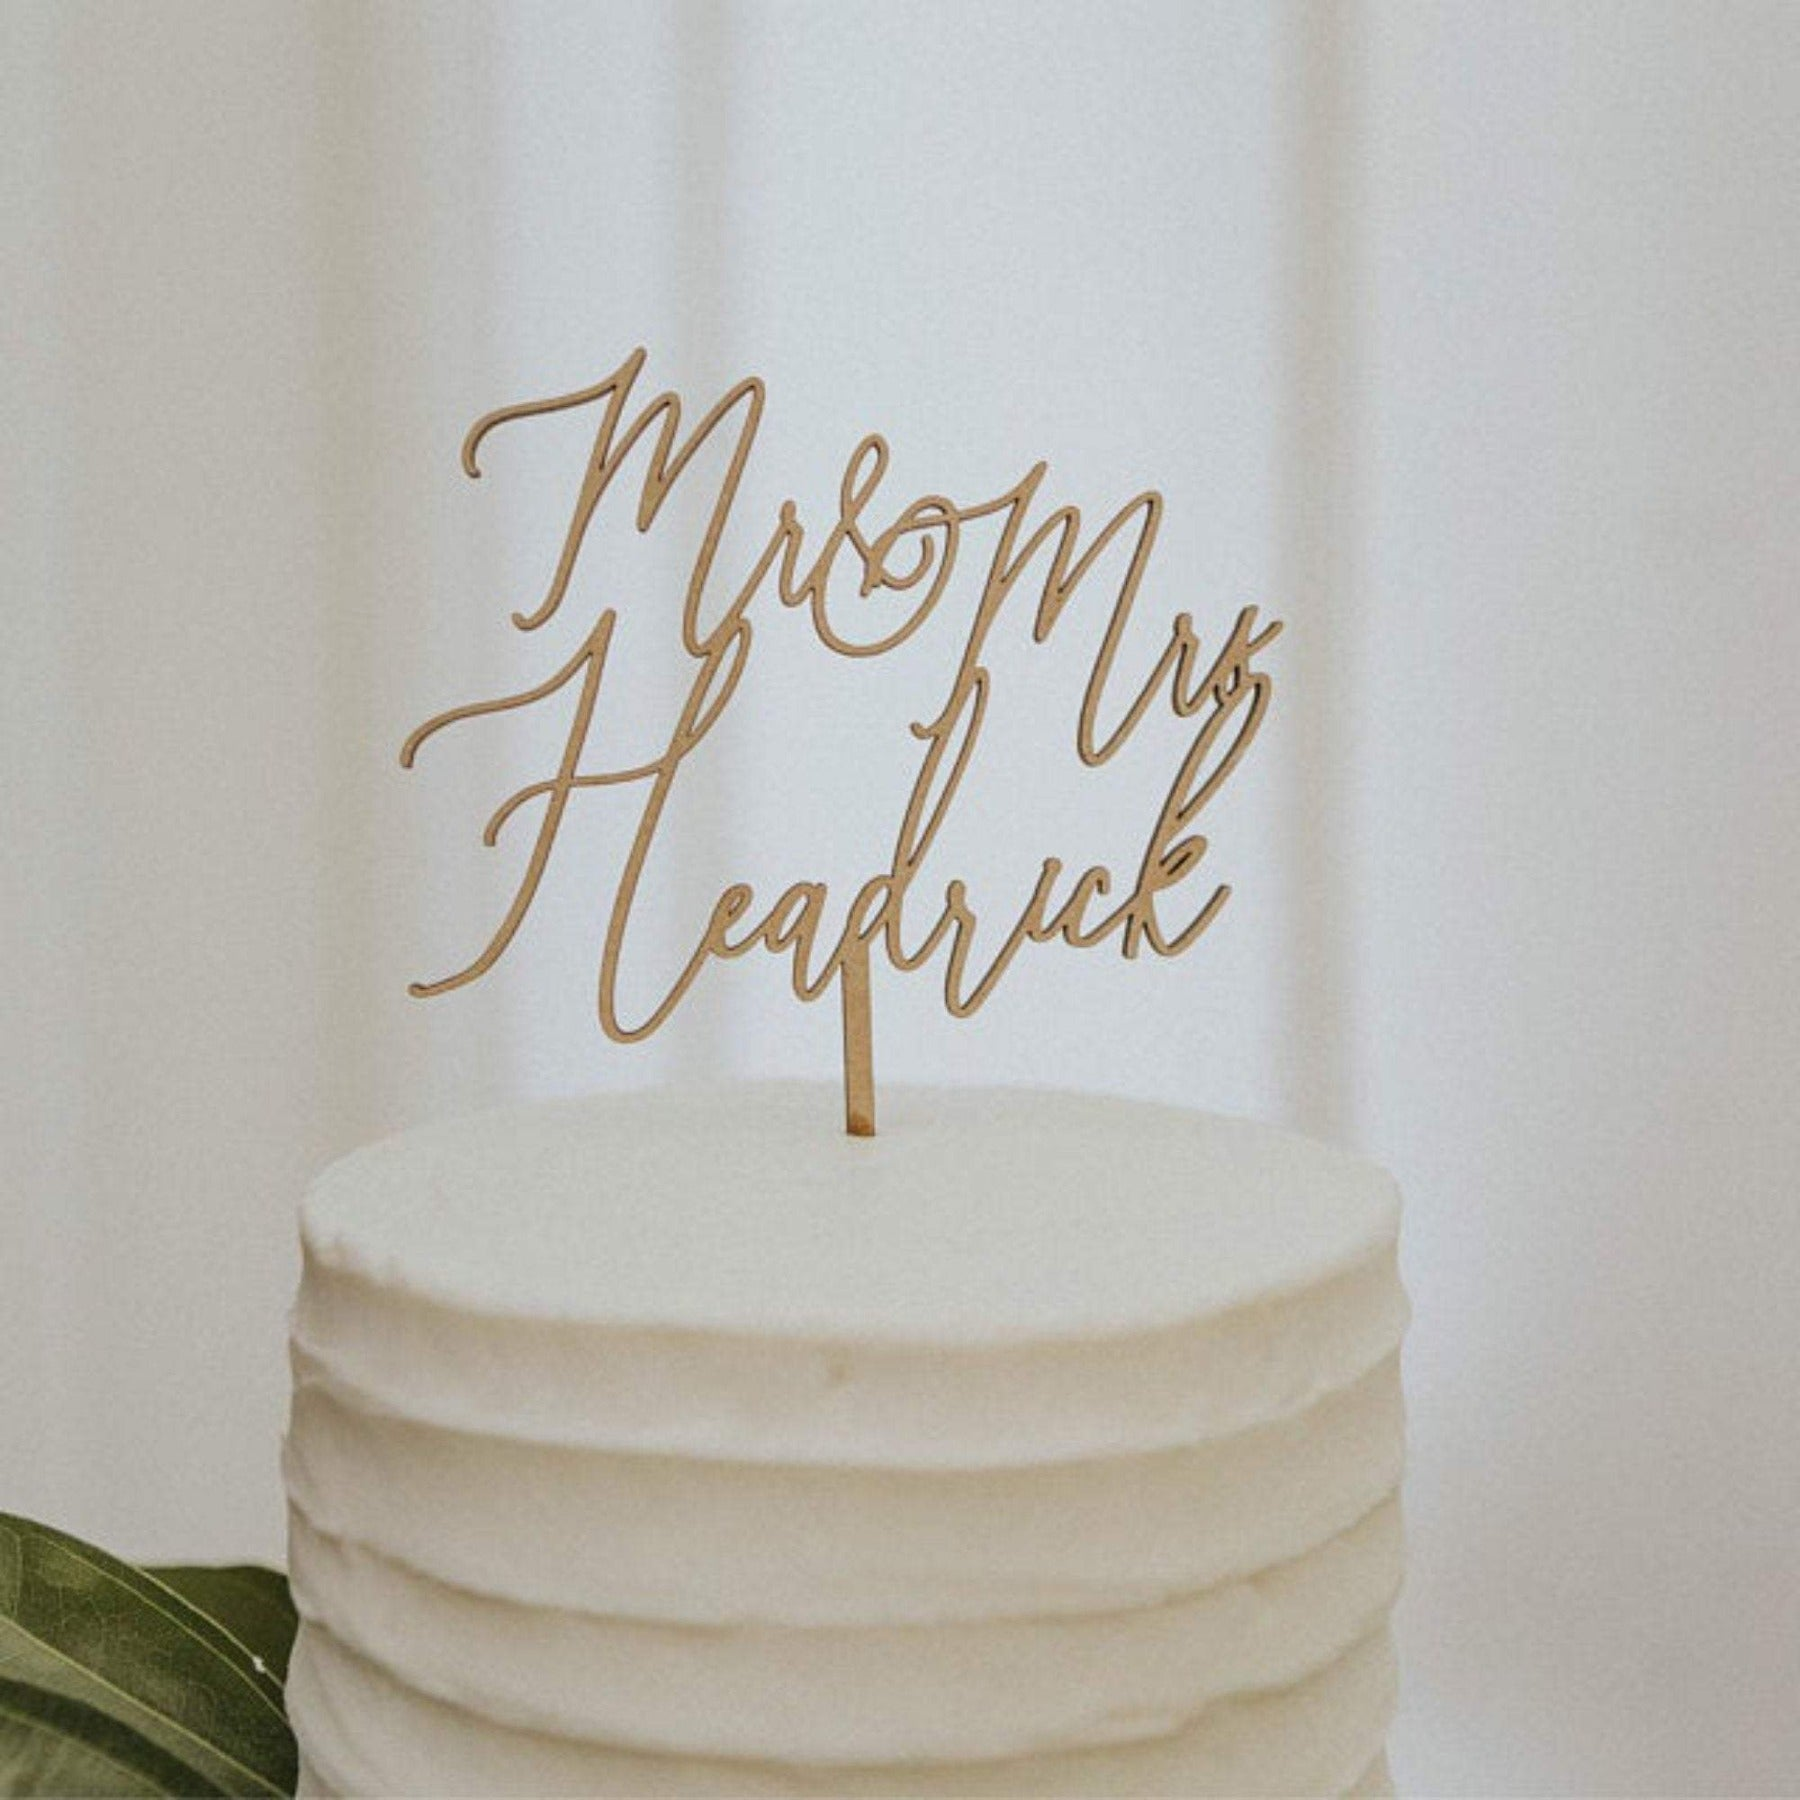 Mr and Mrs Wedding Cake Topper |  Heart Cake Topper Personalized | Gold, Silver, Rose Gold, & Wood Cake Topper | Custom Wood Cake Toppers